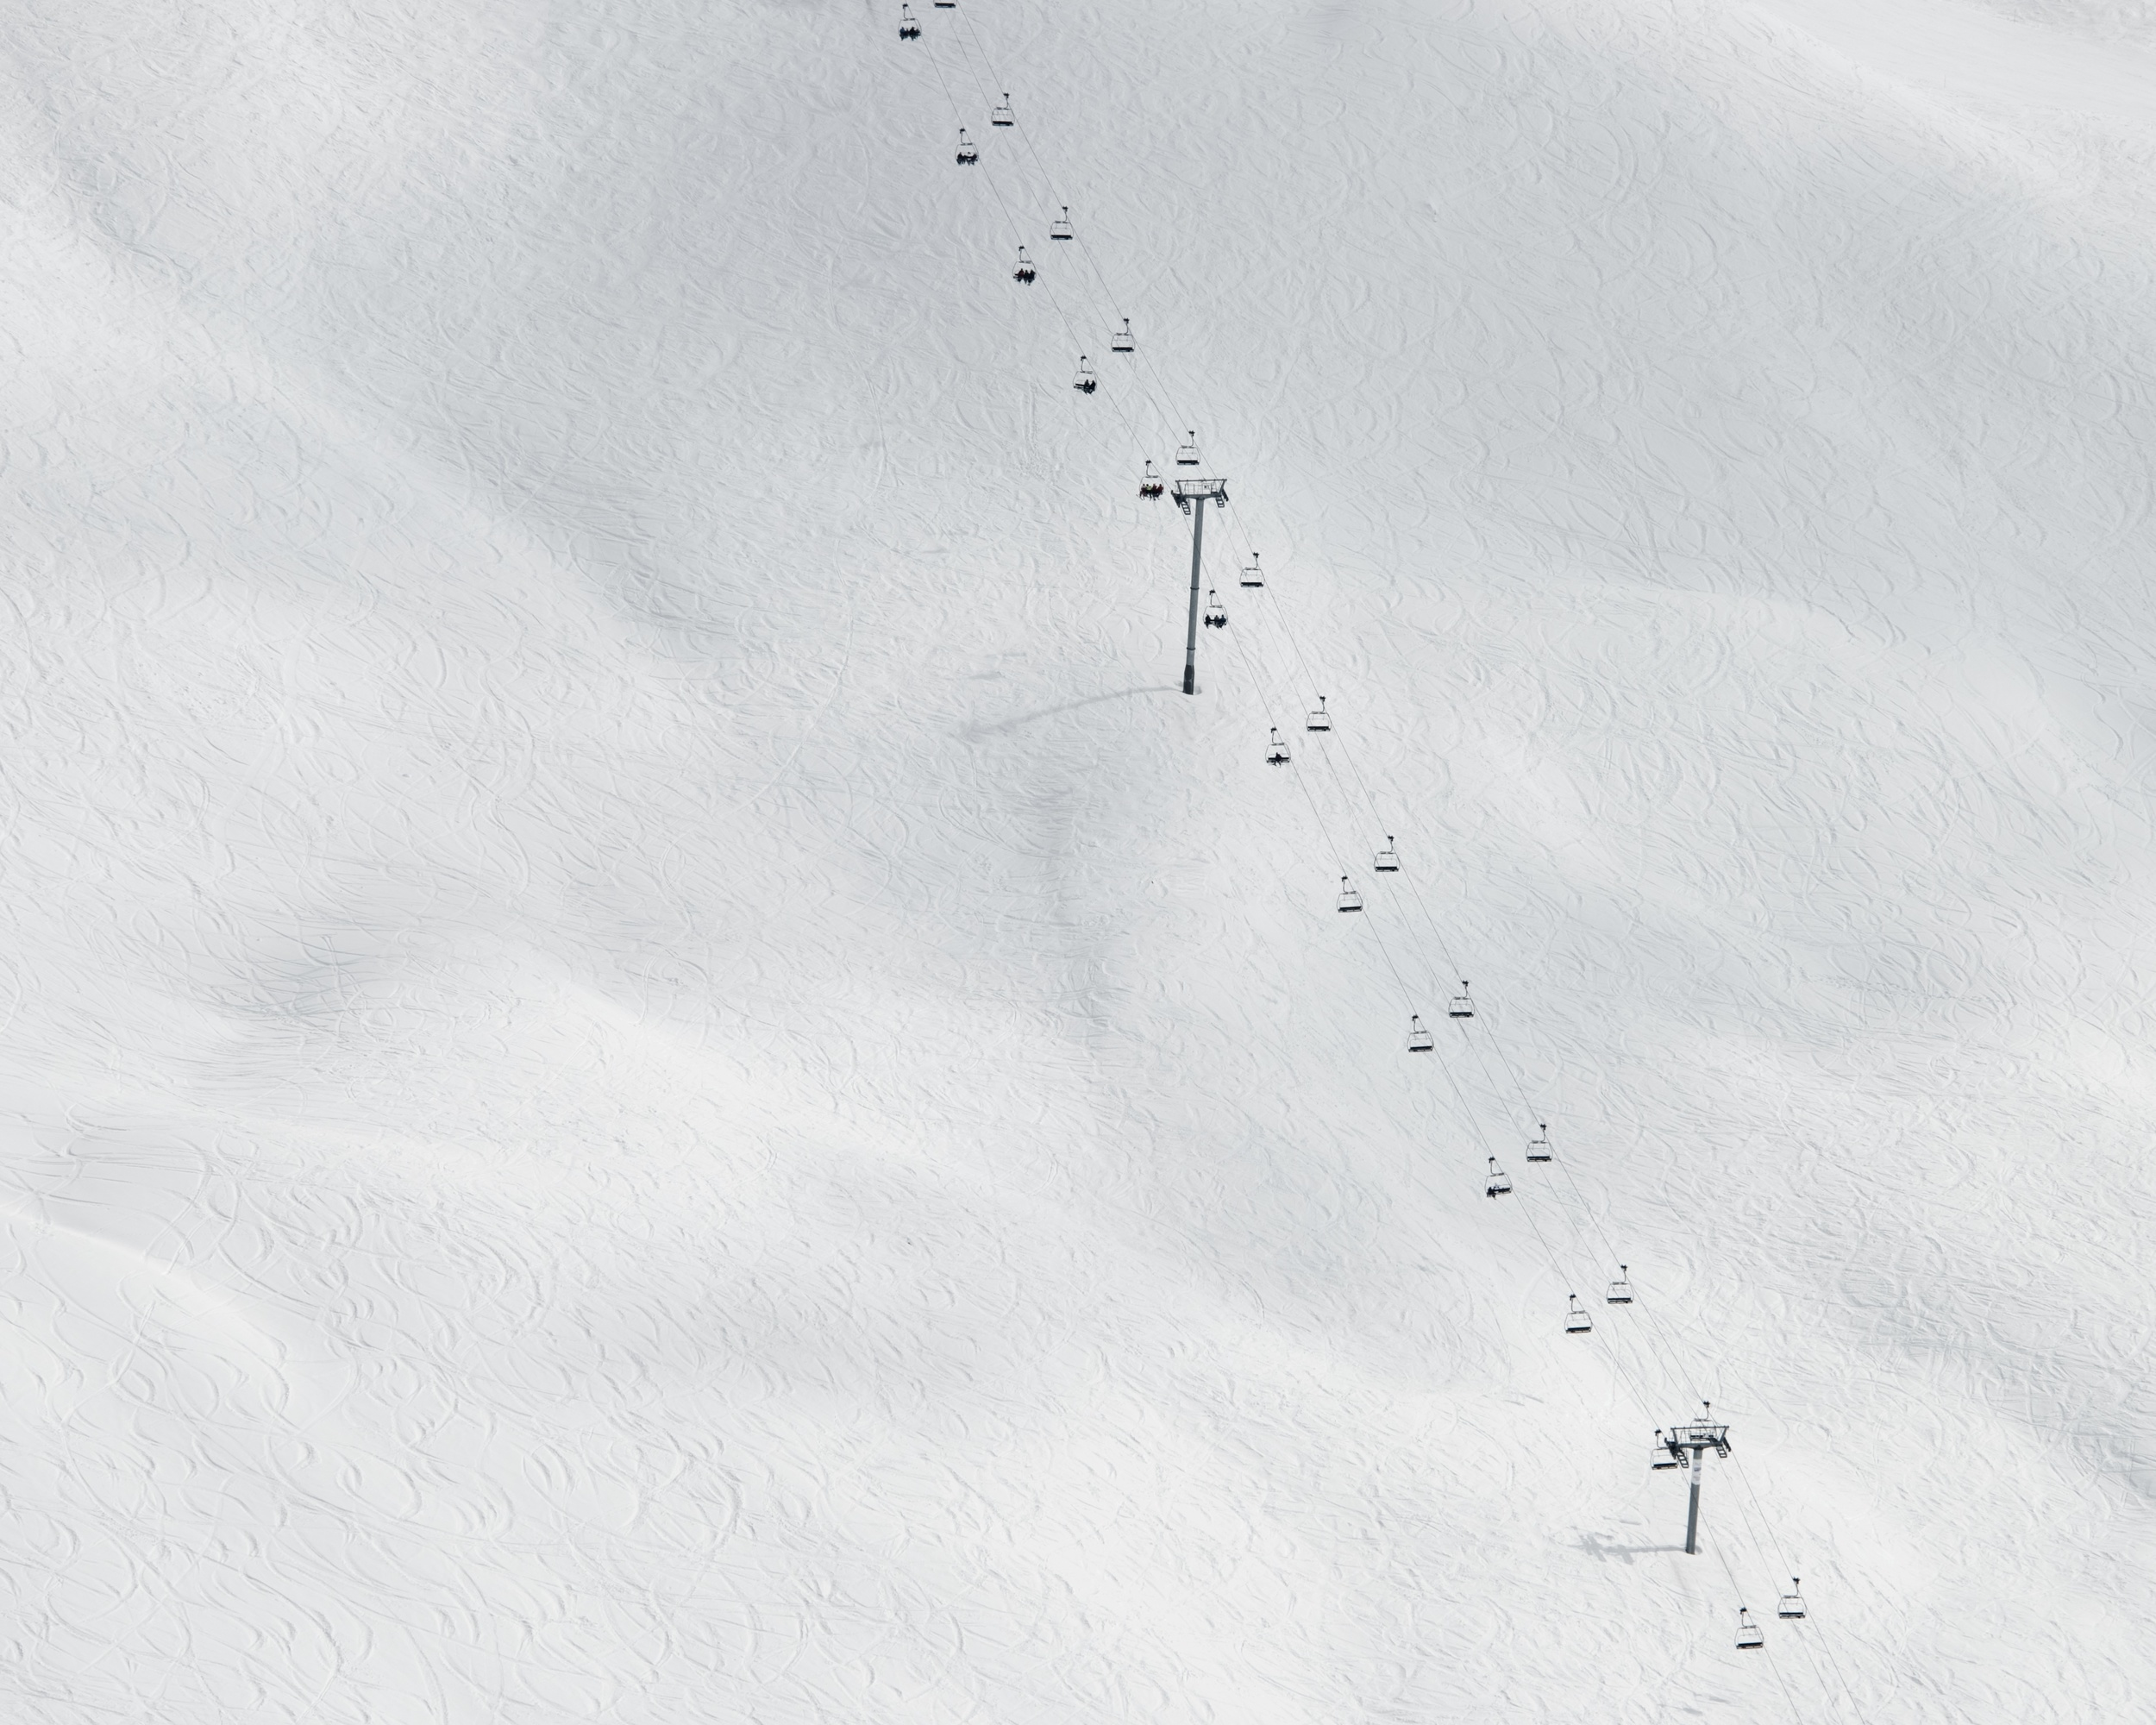 Chairlift, 2013